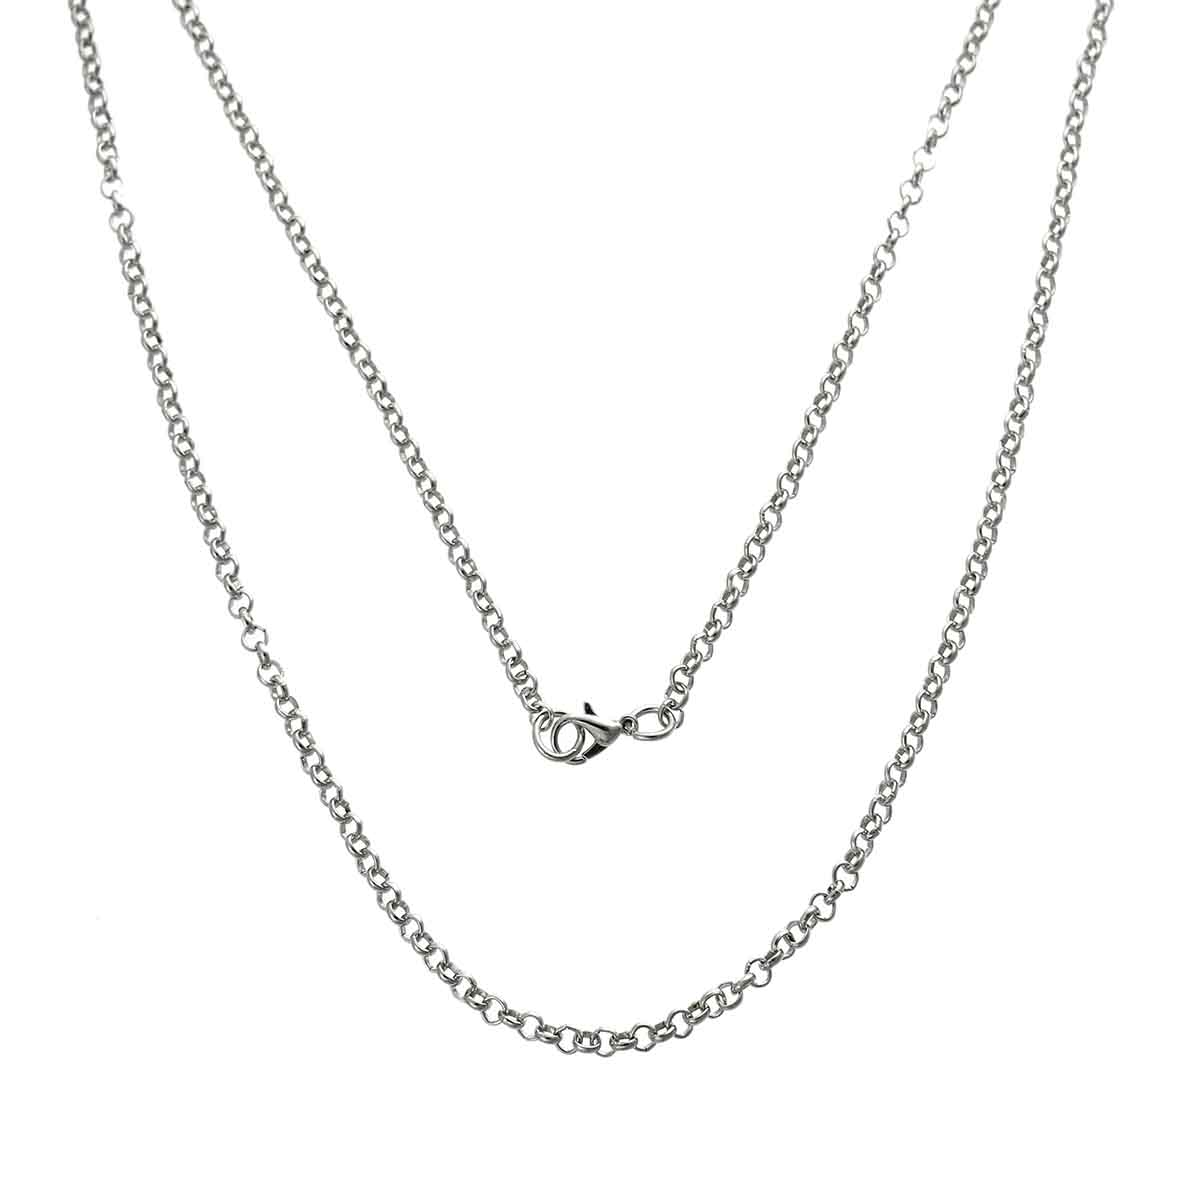 MJARTORIA 1PC Long Cross Chain Gold Silver Palted Chain For Jewelry Making DIY Necklace Women Men Hand Made Supplies For Jewelry